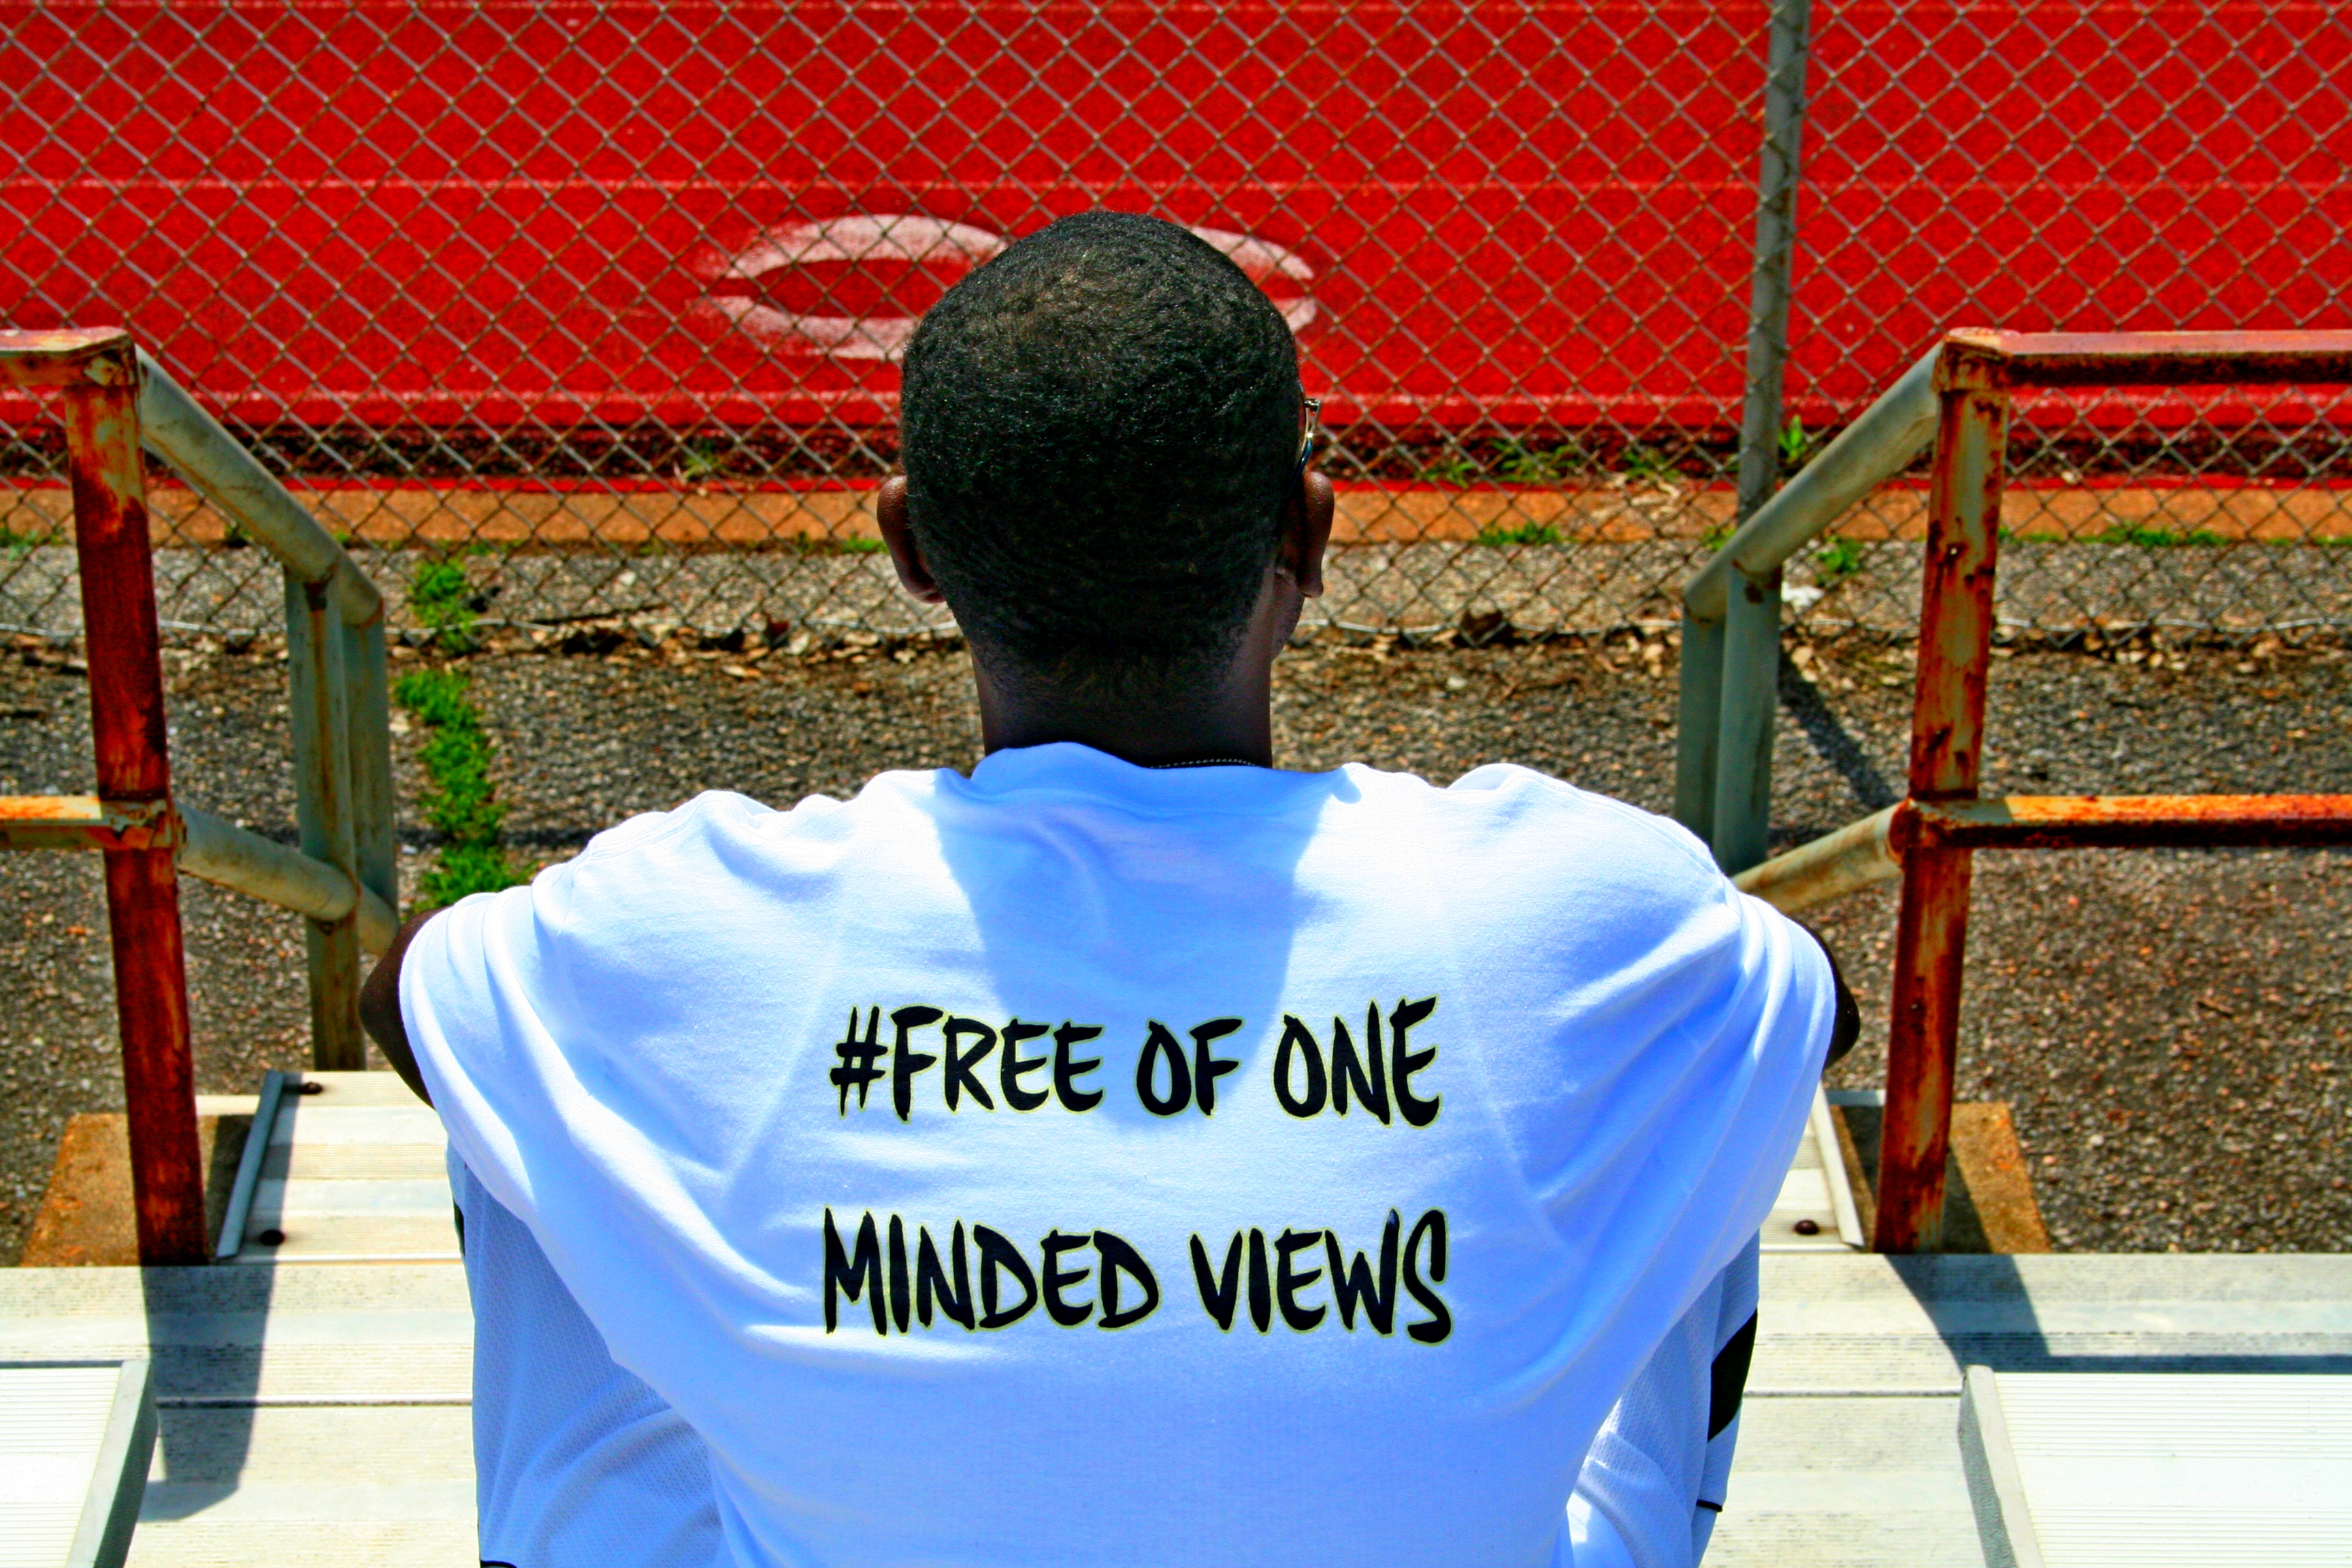 Disabled Entrepreneurs: #Free Of One Minded Views